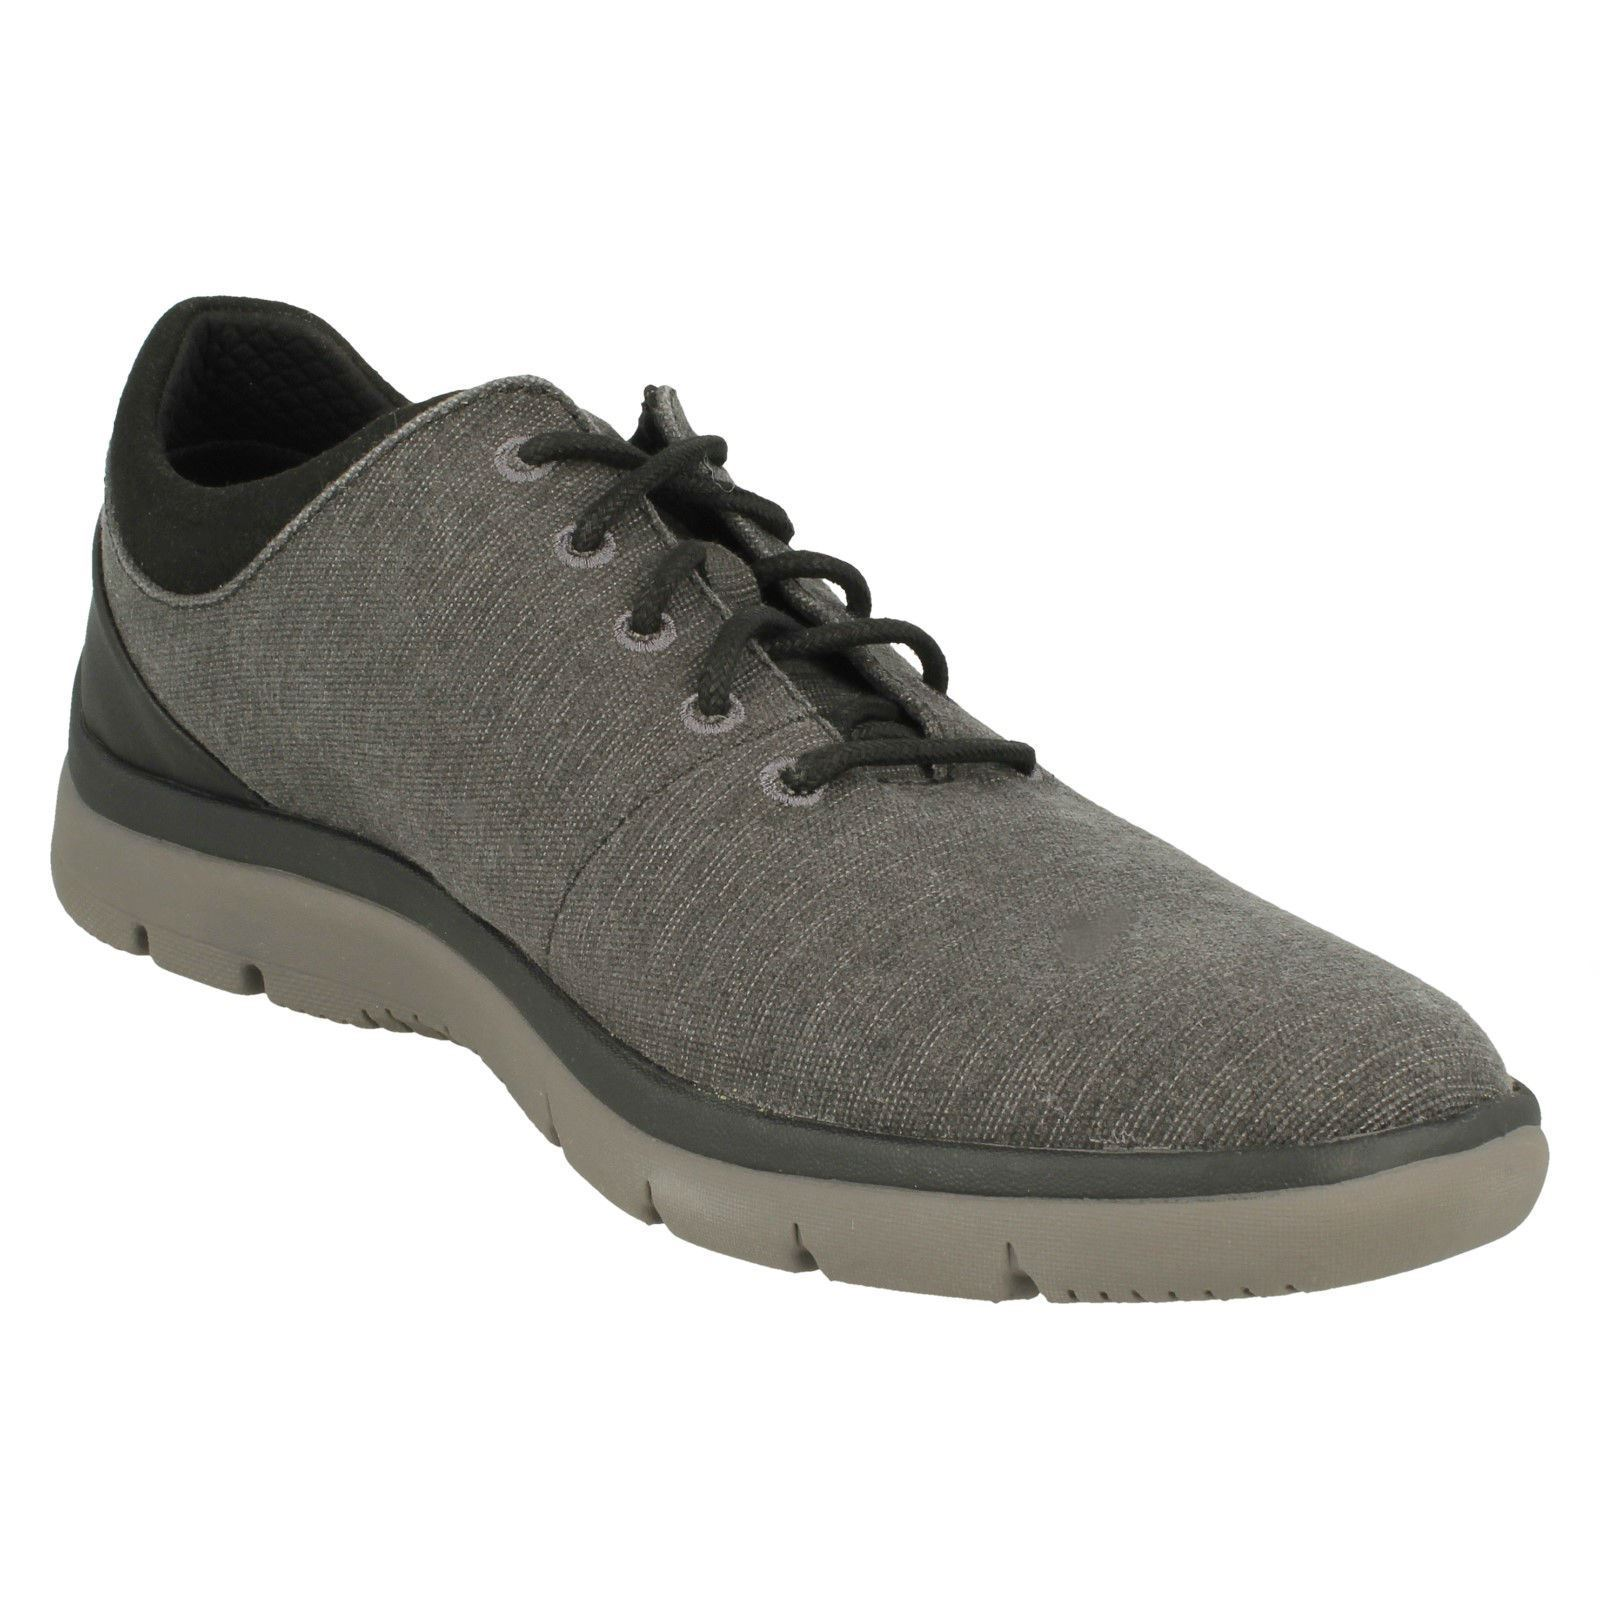 Uomo Lace Cloudsteppers  by Clarks Lace Uomo Up Casual Trainers Schuhes Tunsil Ace dd50a8